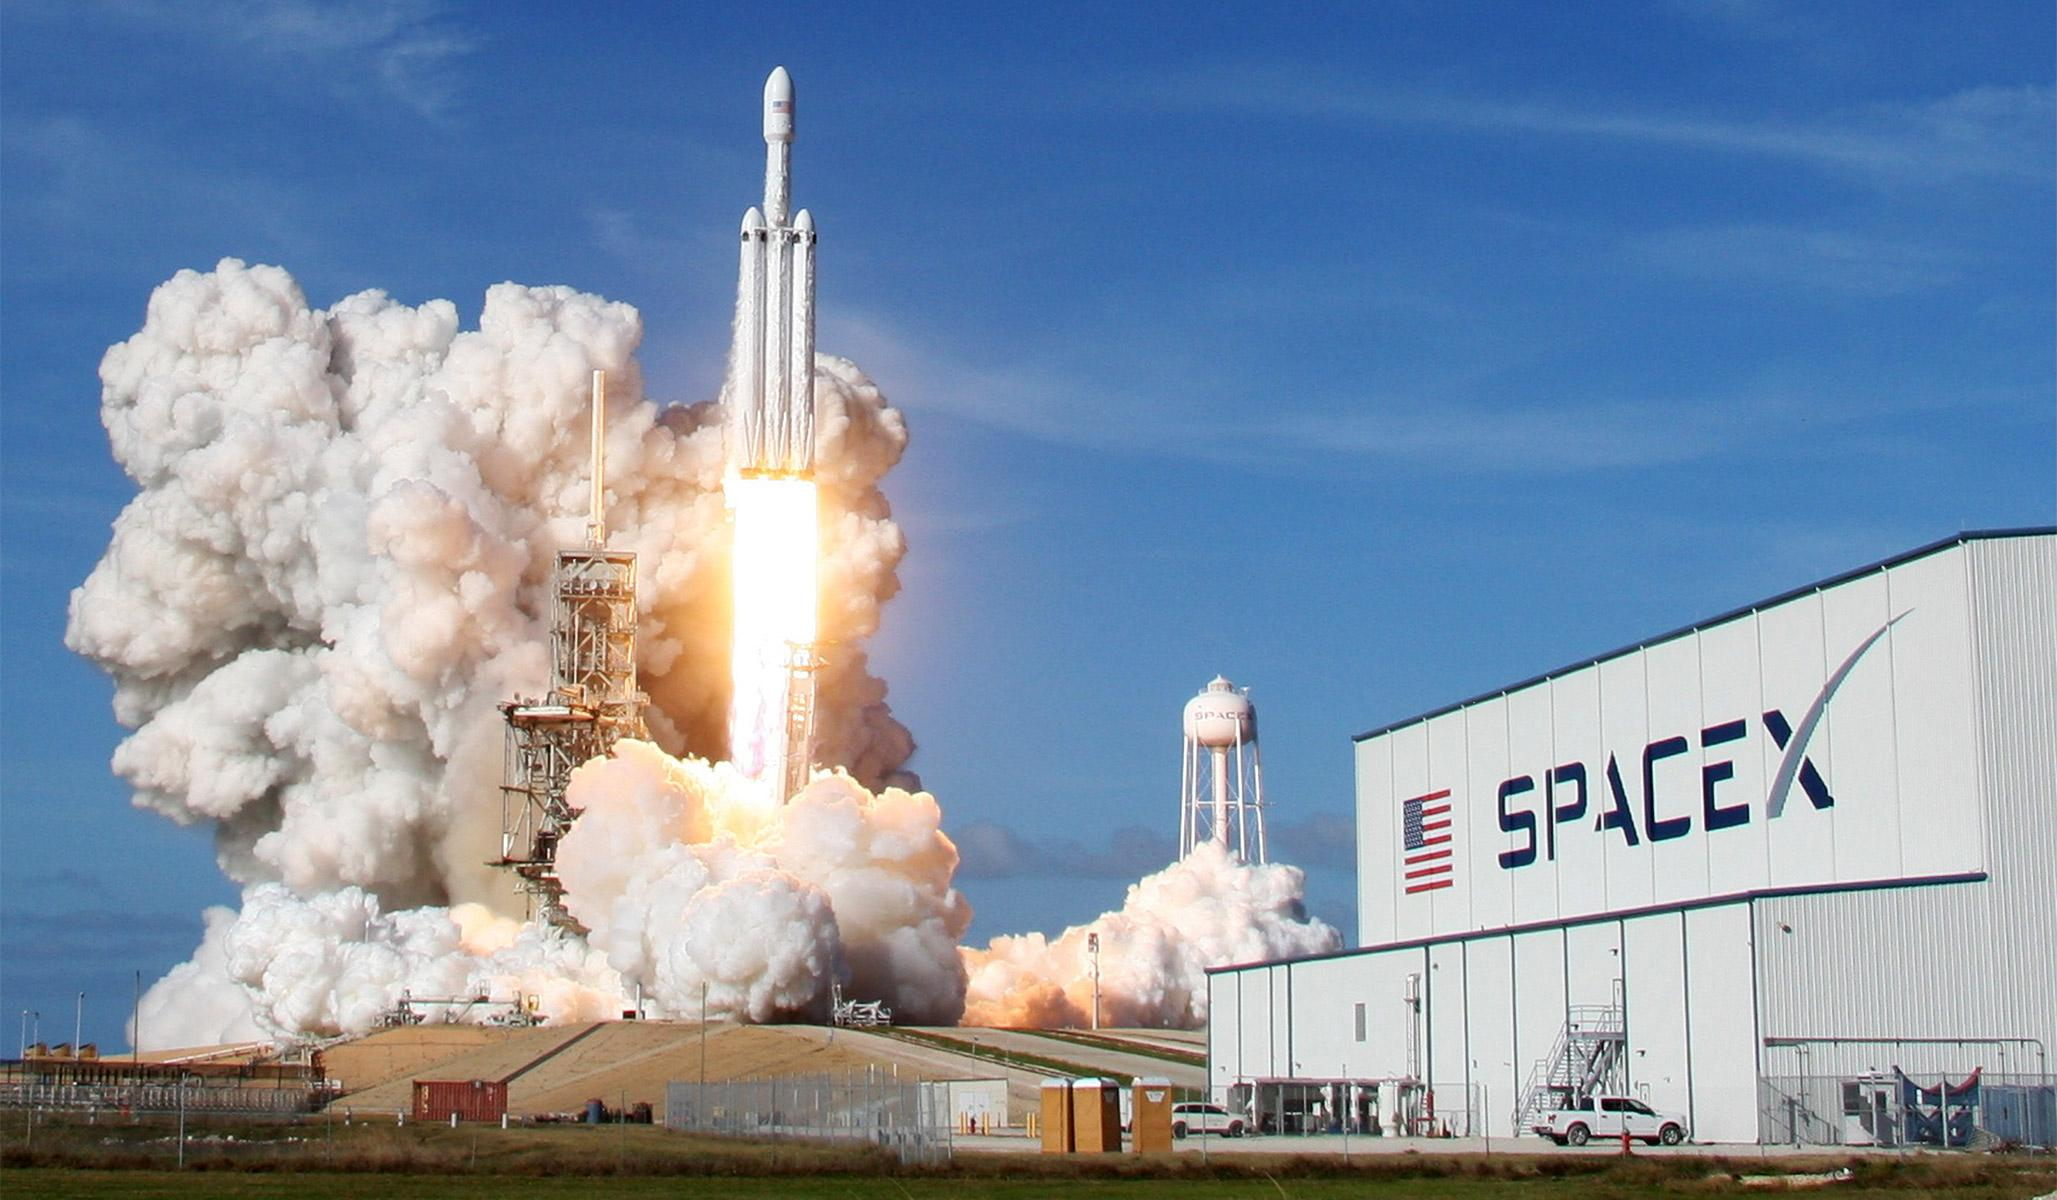 falcon-heavy-elon-musk-rocket-launch-reminder-american-potential